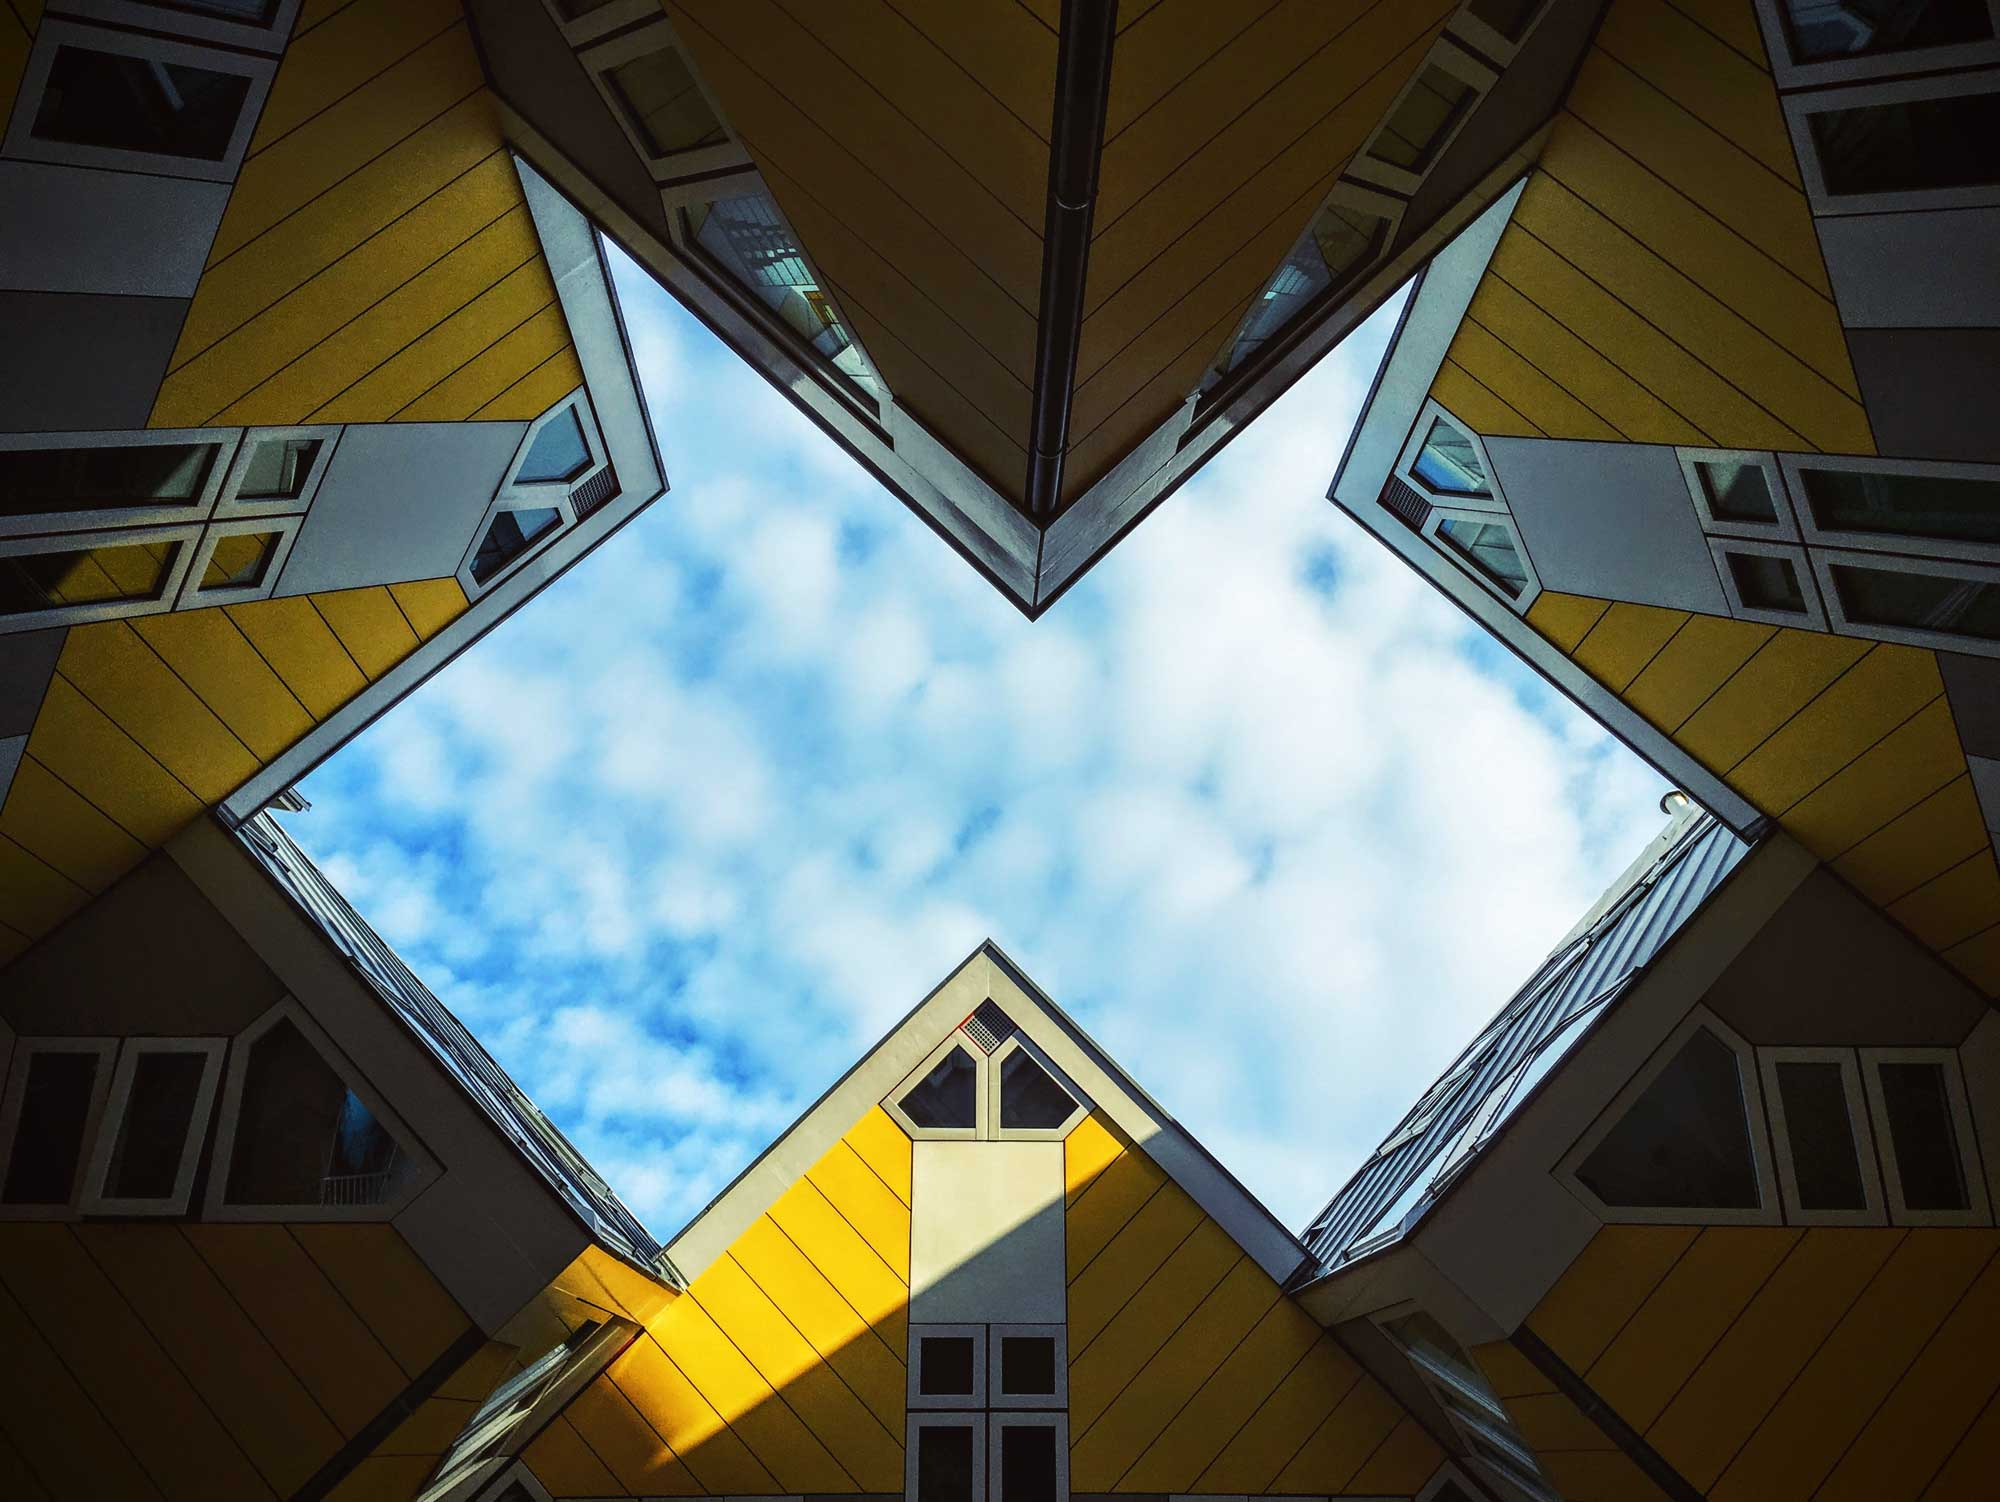 Abstract Image of Buildings Looking Toward Sky